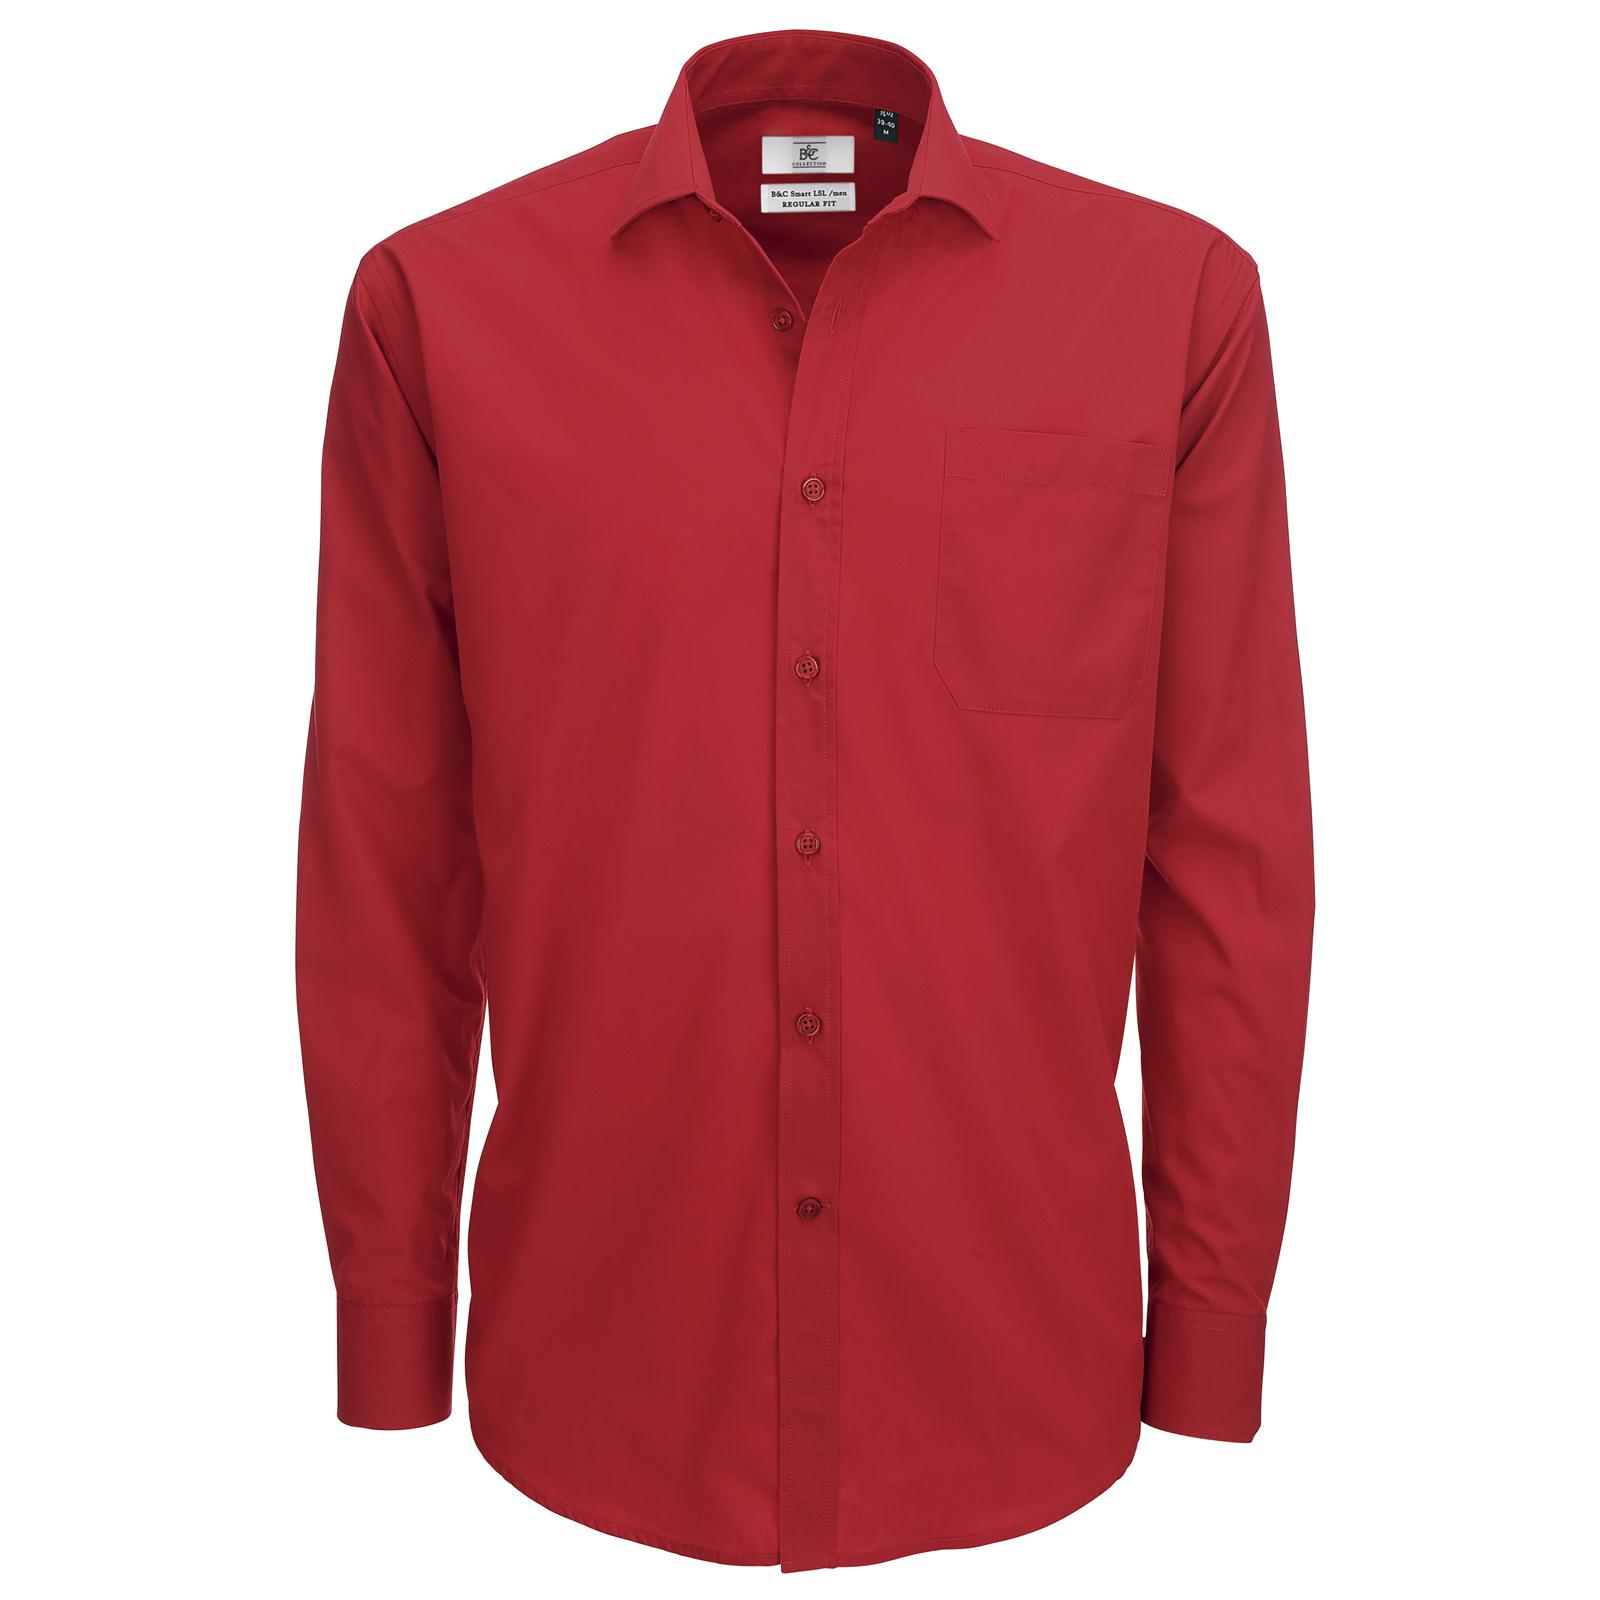 New B/&C Mens Smart Work Long Sleeve Polycotton Shirt in 5 Colours S 4XL